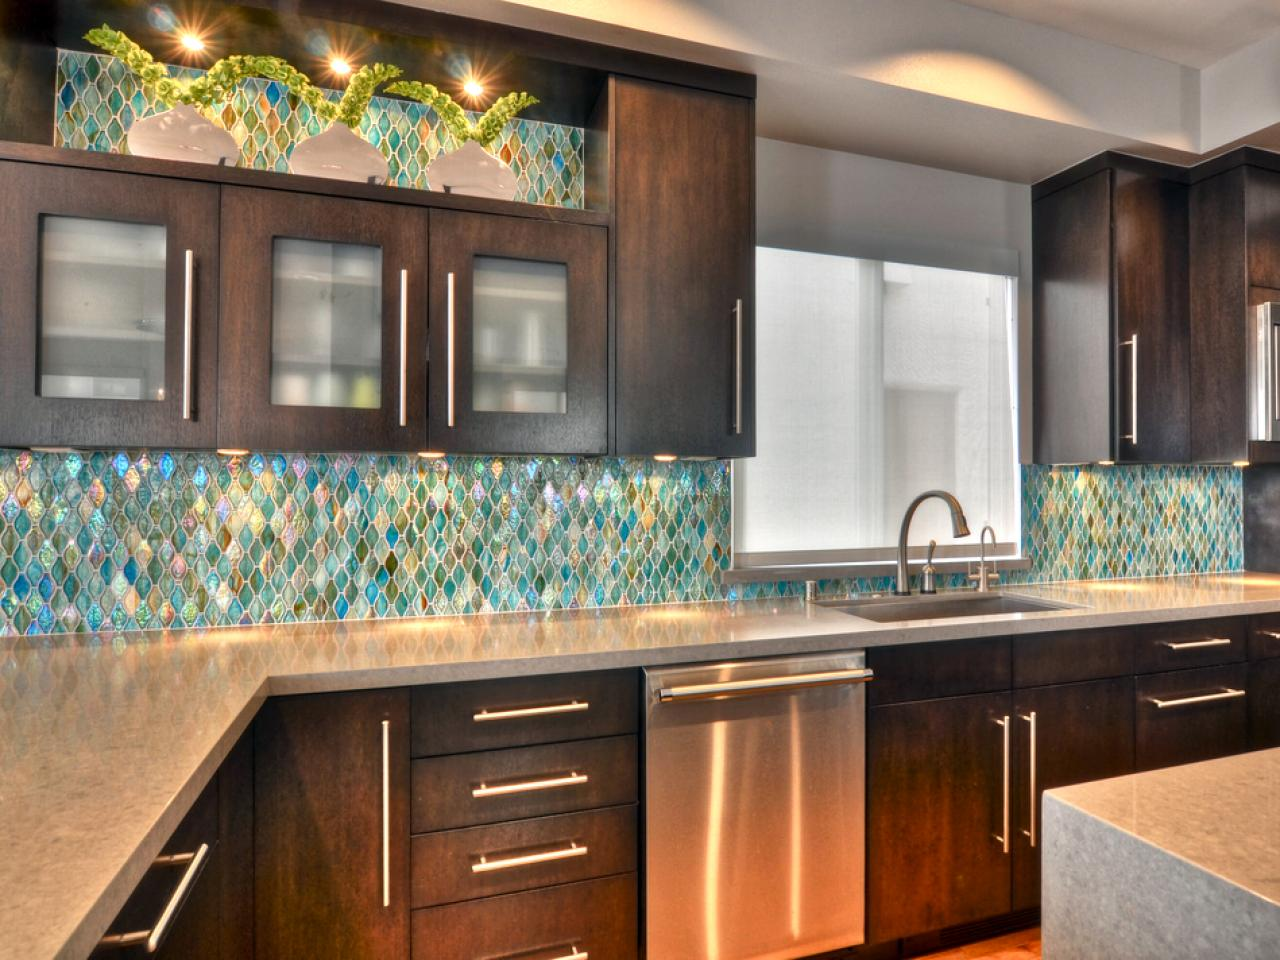 Lovely Glass Tile Kitchen Backsplash.